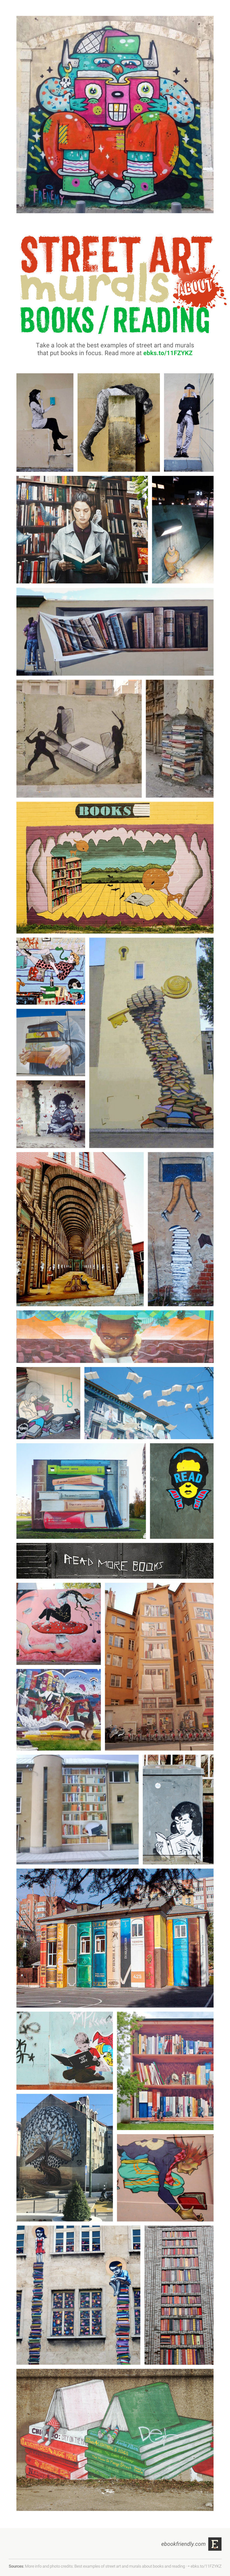 Best examples of the literary street art #infographic